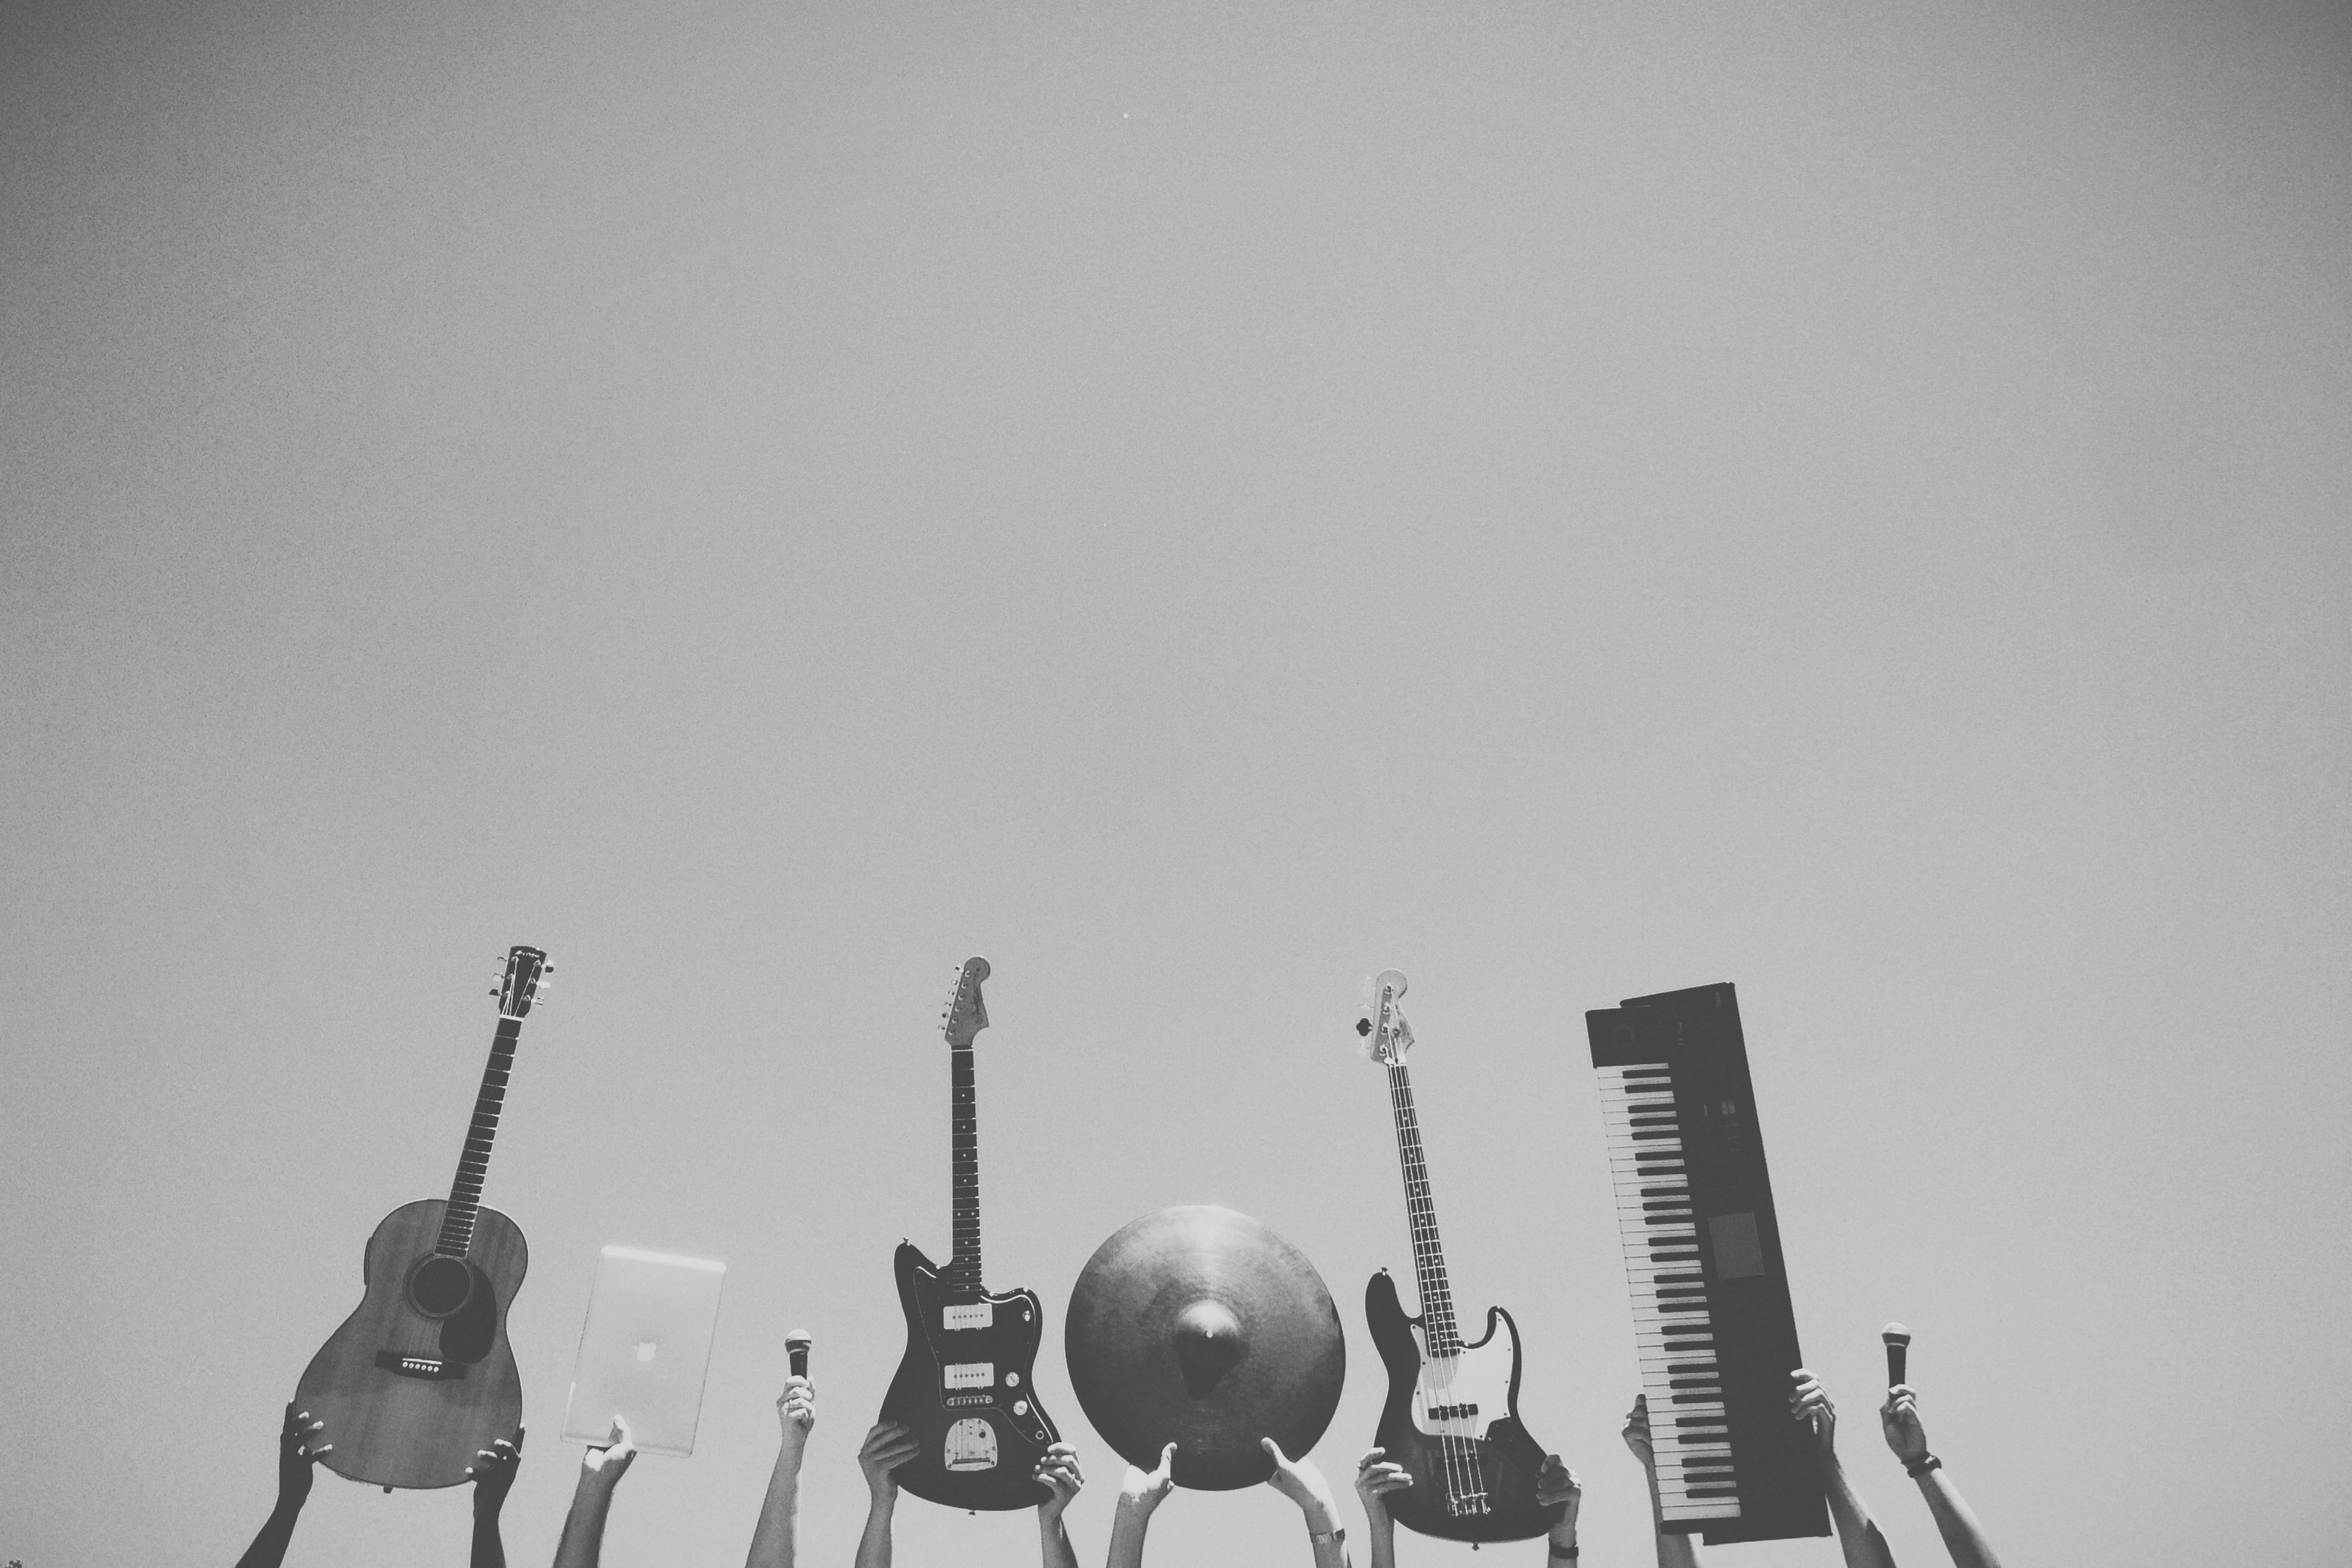 People holding up musical instruments.